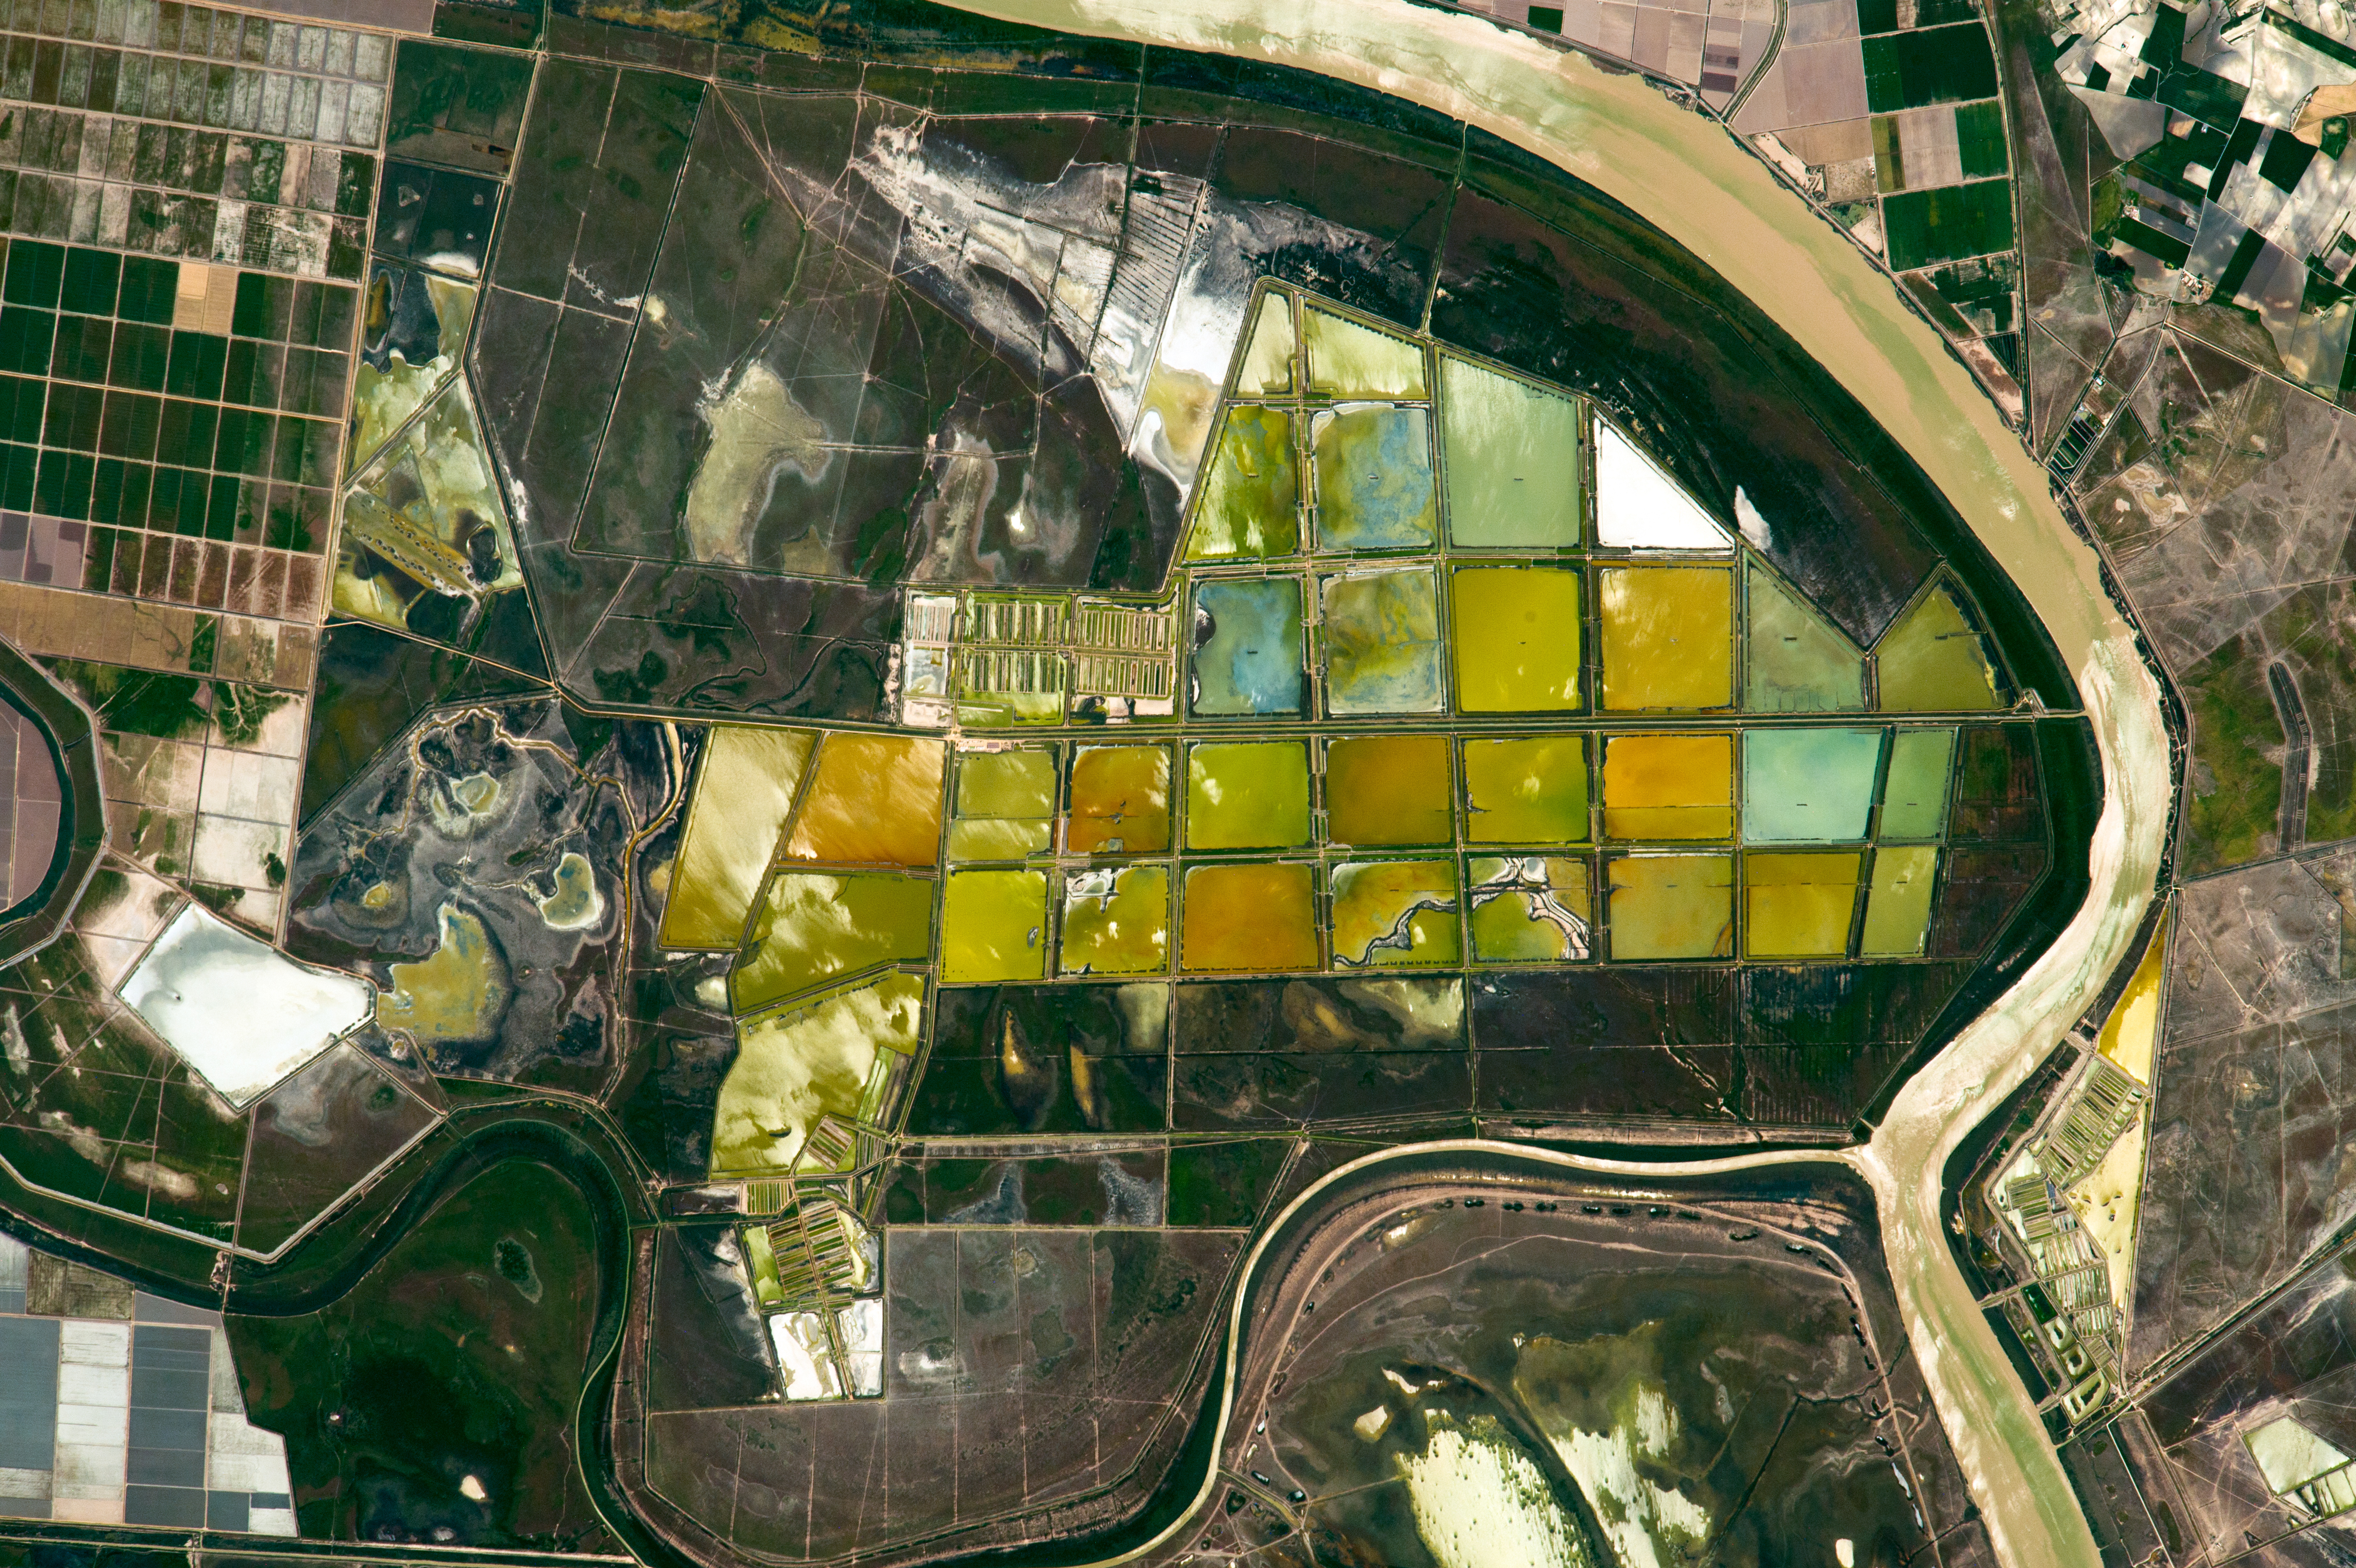 Fish Ponds and Rice Fields, Lower Guadalquivir River - related image preview